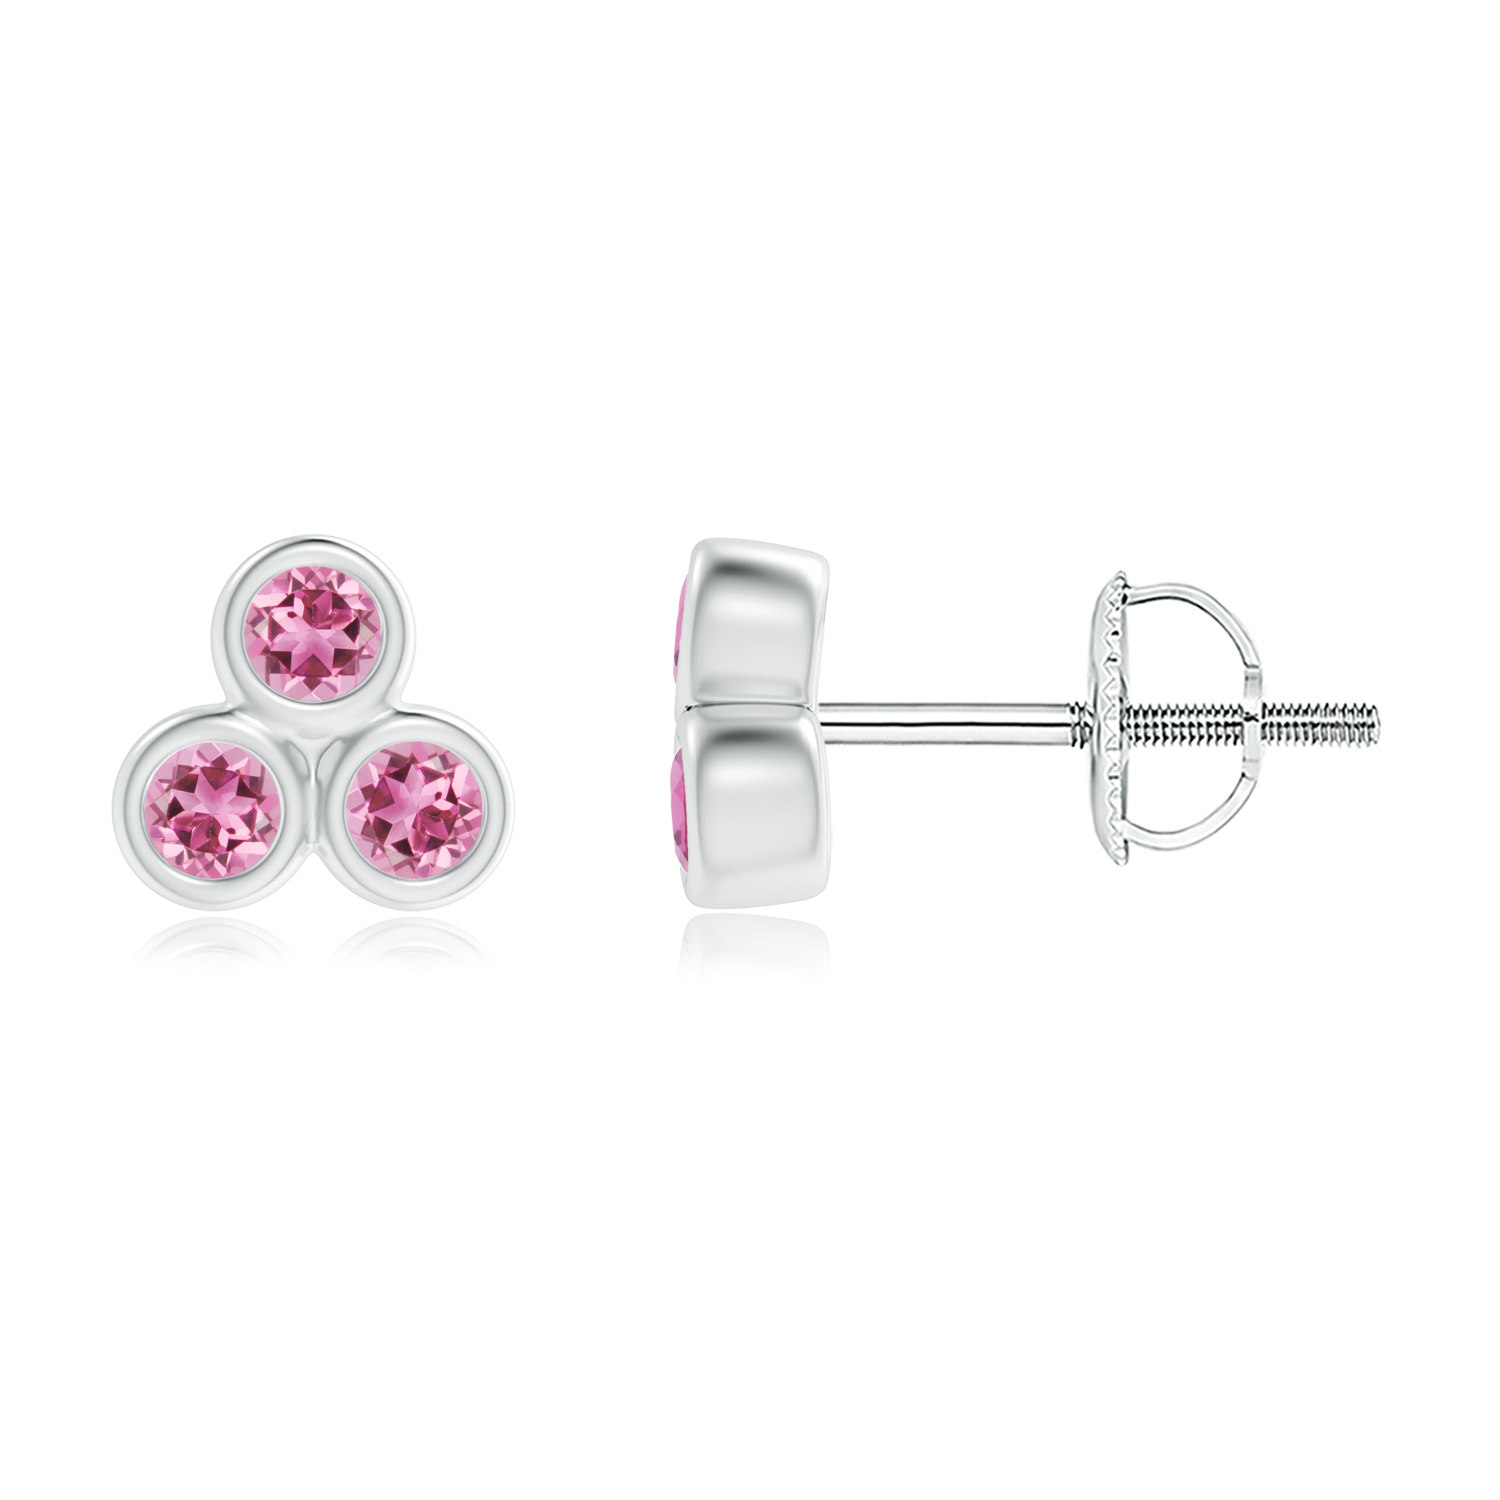 Mother's Day Jewelry Bezel Set Pink Tourmaline Trio Cluster Stud Earrings in .925 Sterling Silver SE1506PT-SL-AAA-2 by Angara.com